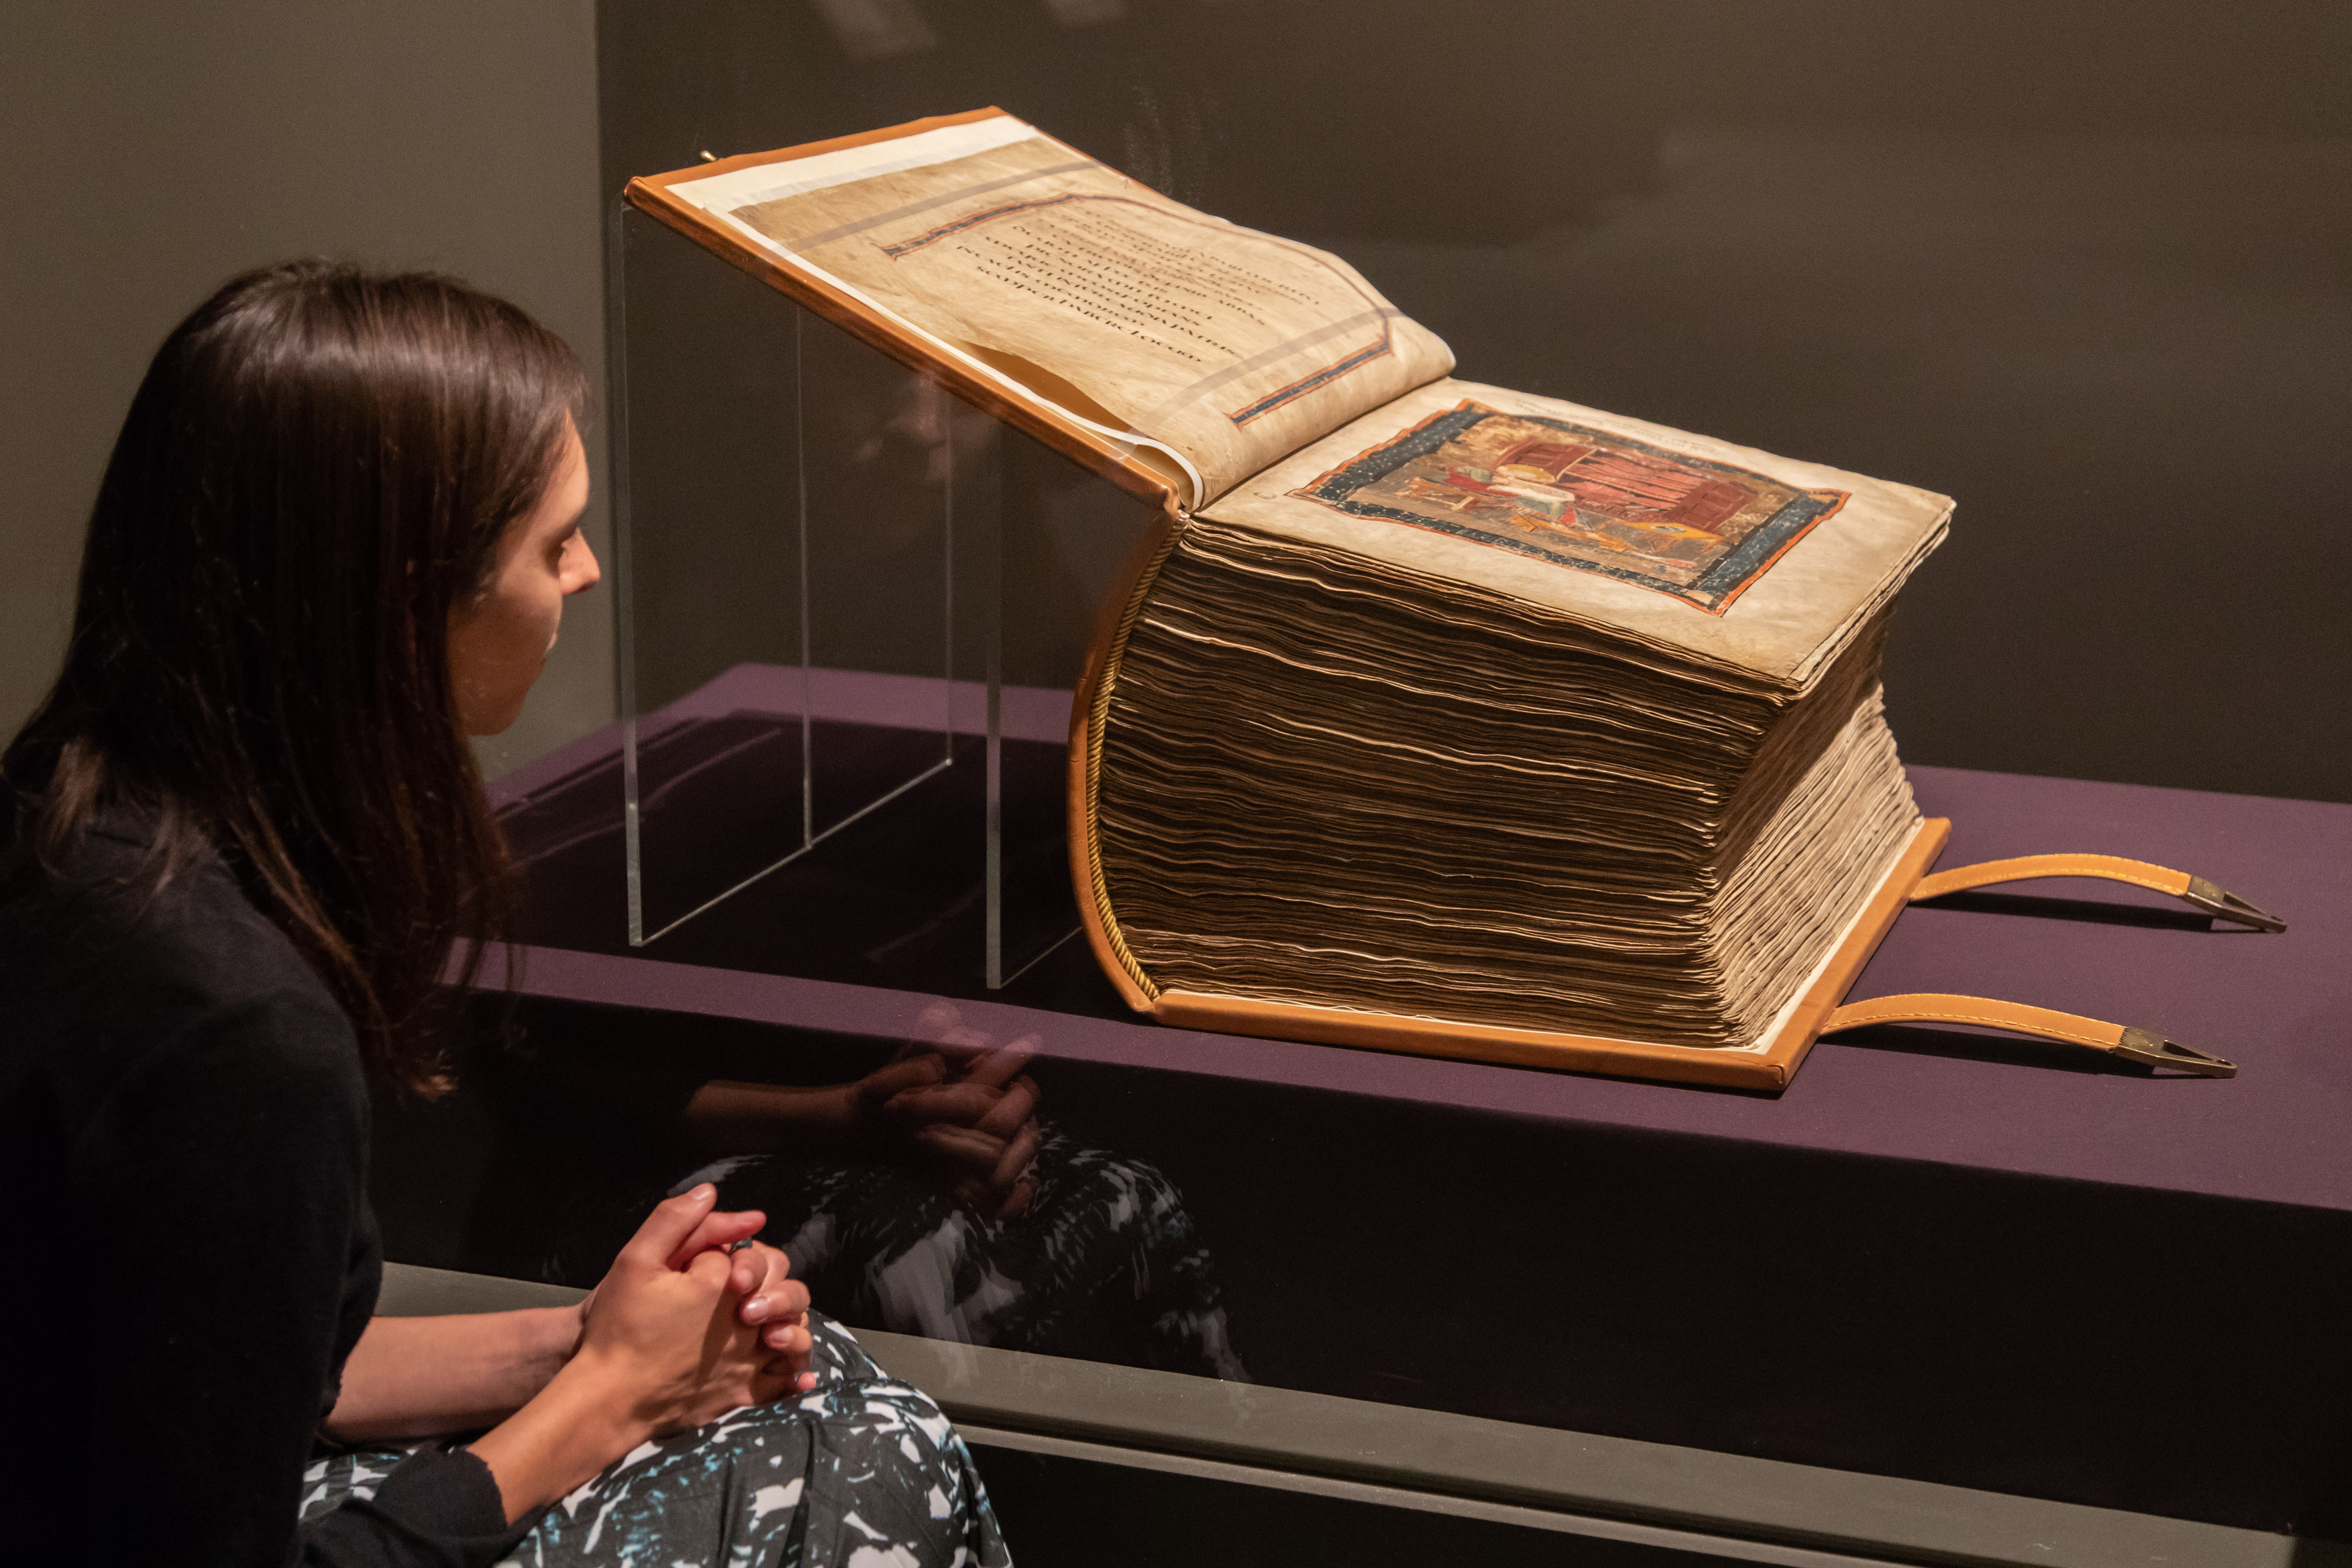 Codex Amiatinus on loan from Biblioteca Medicea Laurenziana to Anglo-Saxon Kingdoms at the British Library (c) Sam Lane Photography